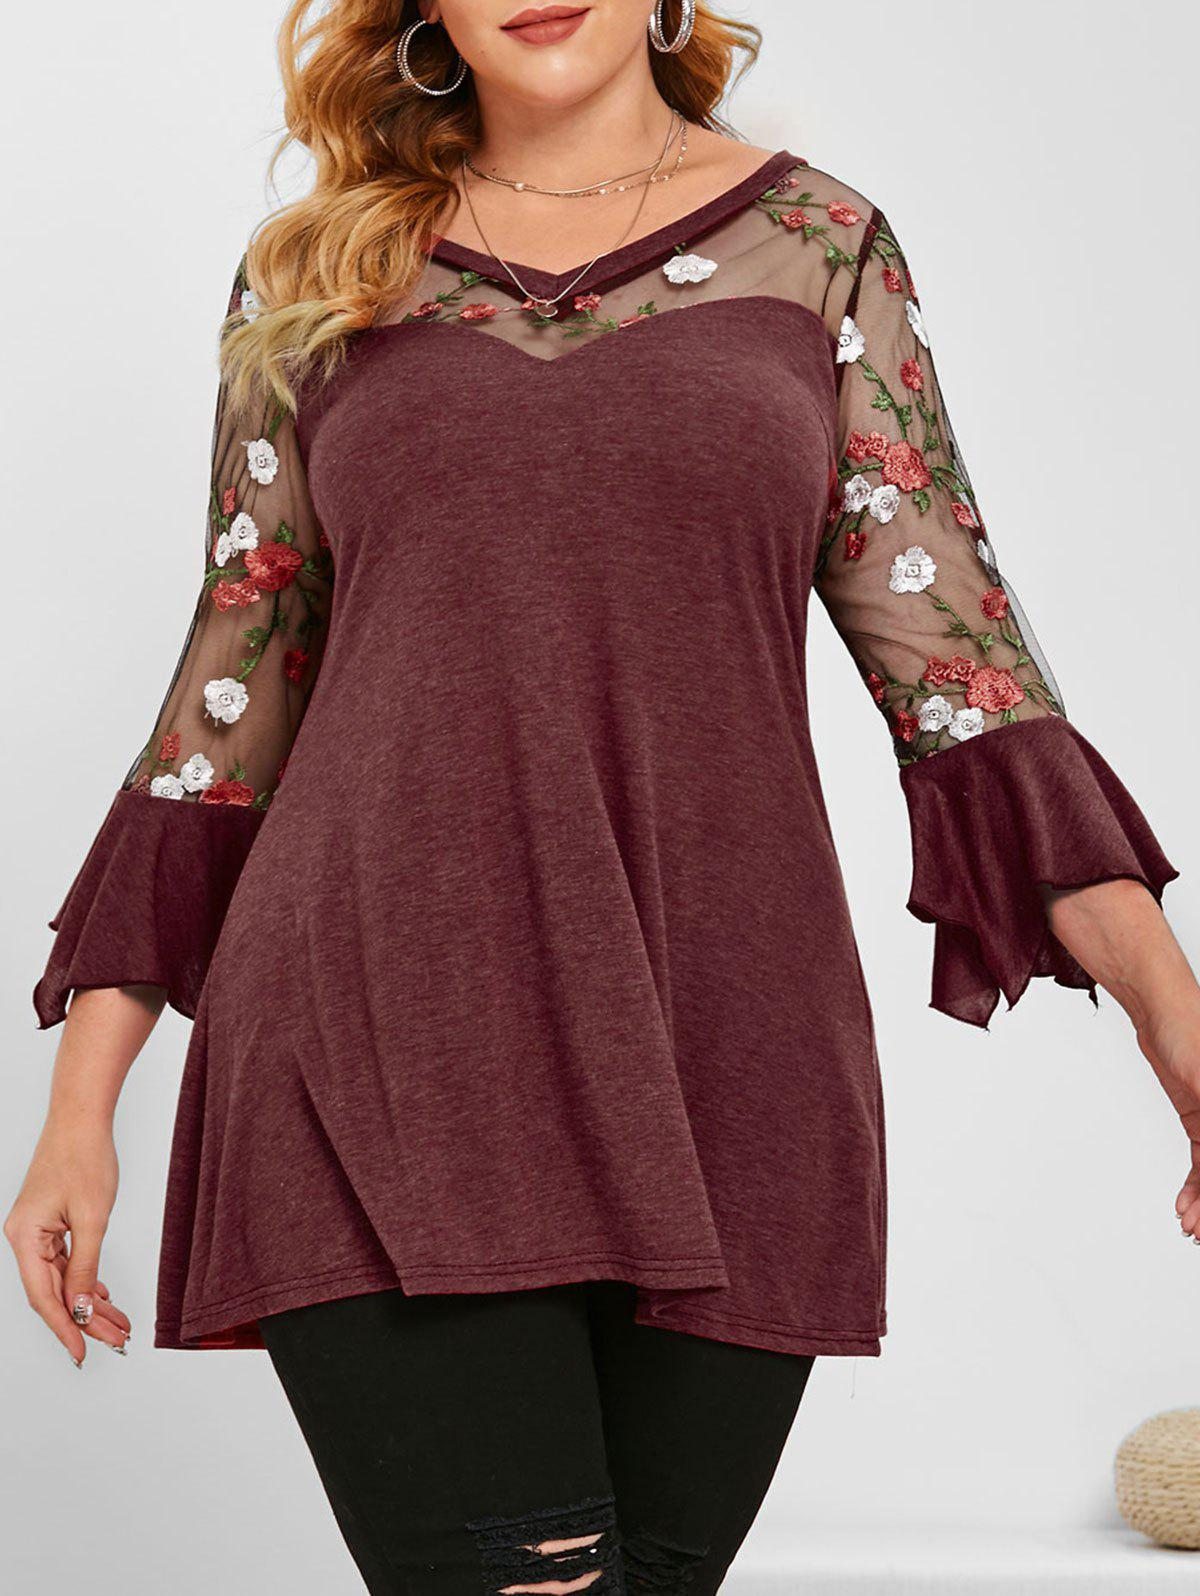 Shops Flare Sleeve Mesh Panel Floral Embroidered Plus Size Top